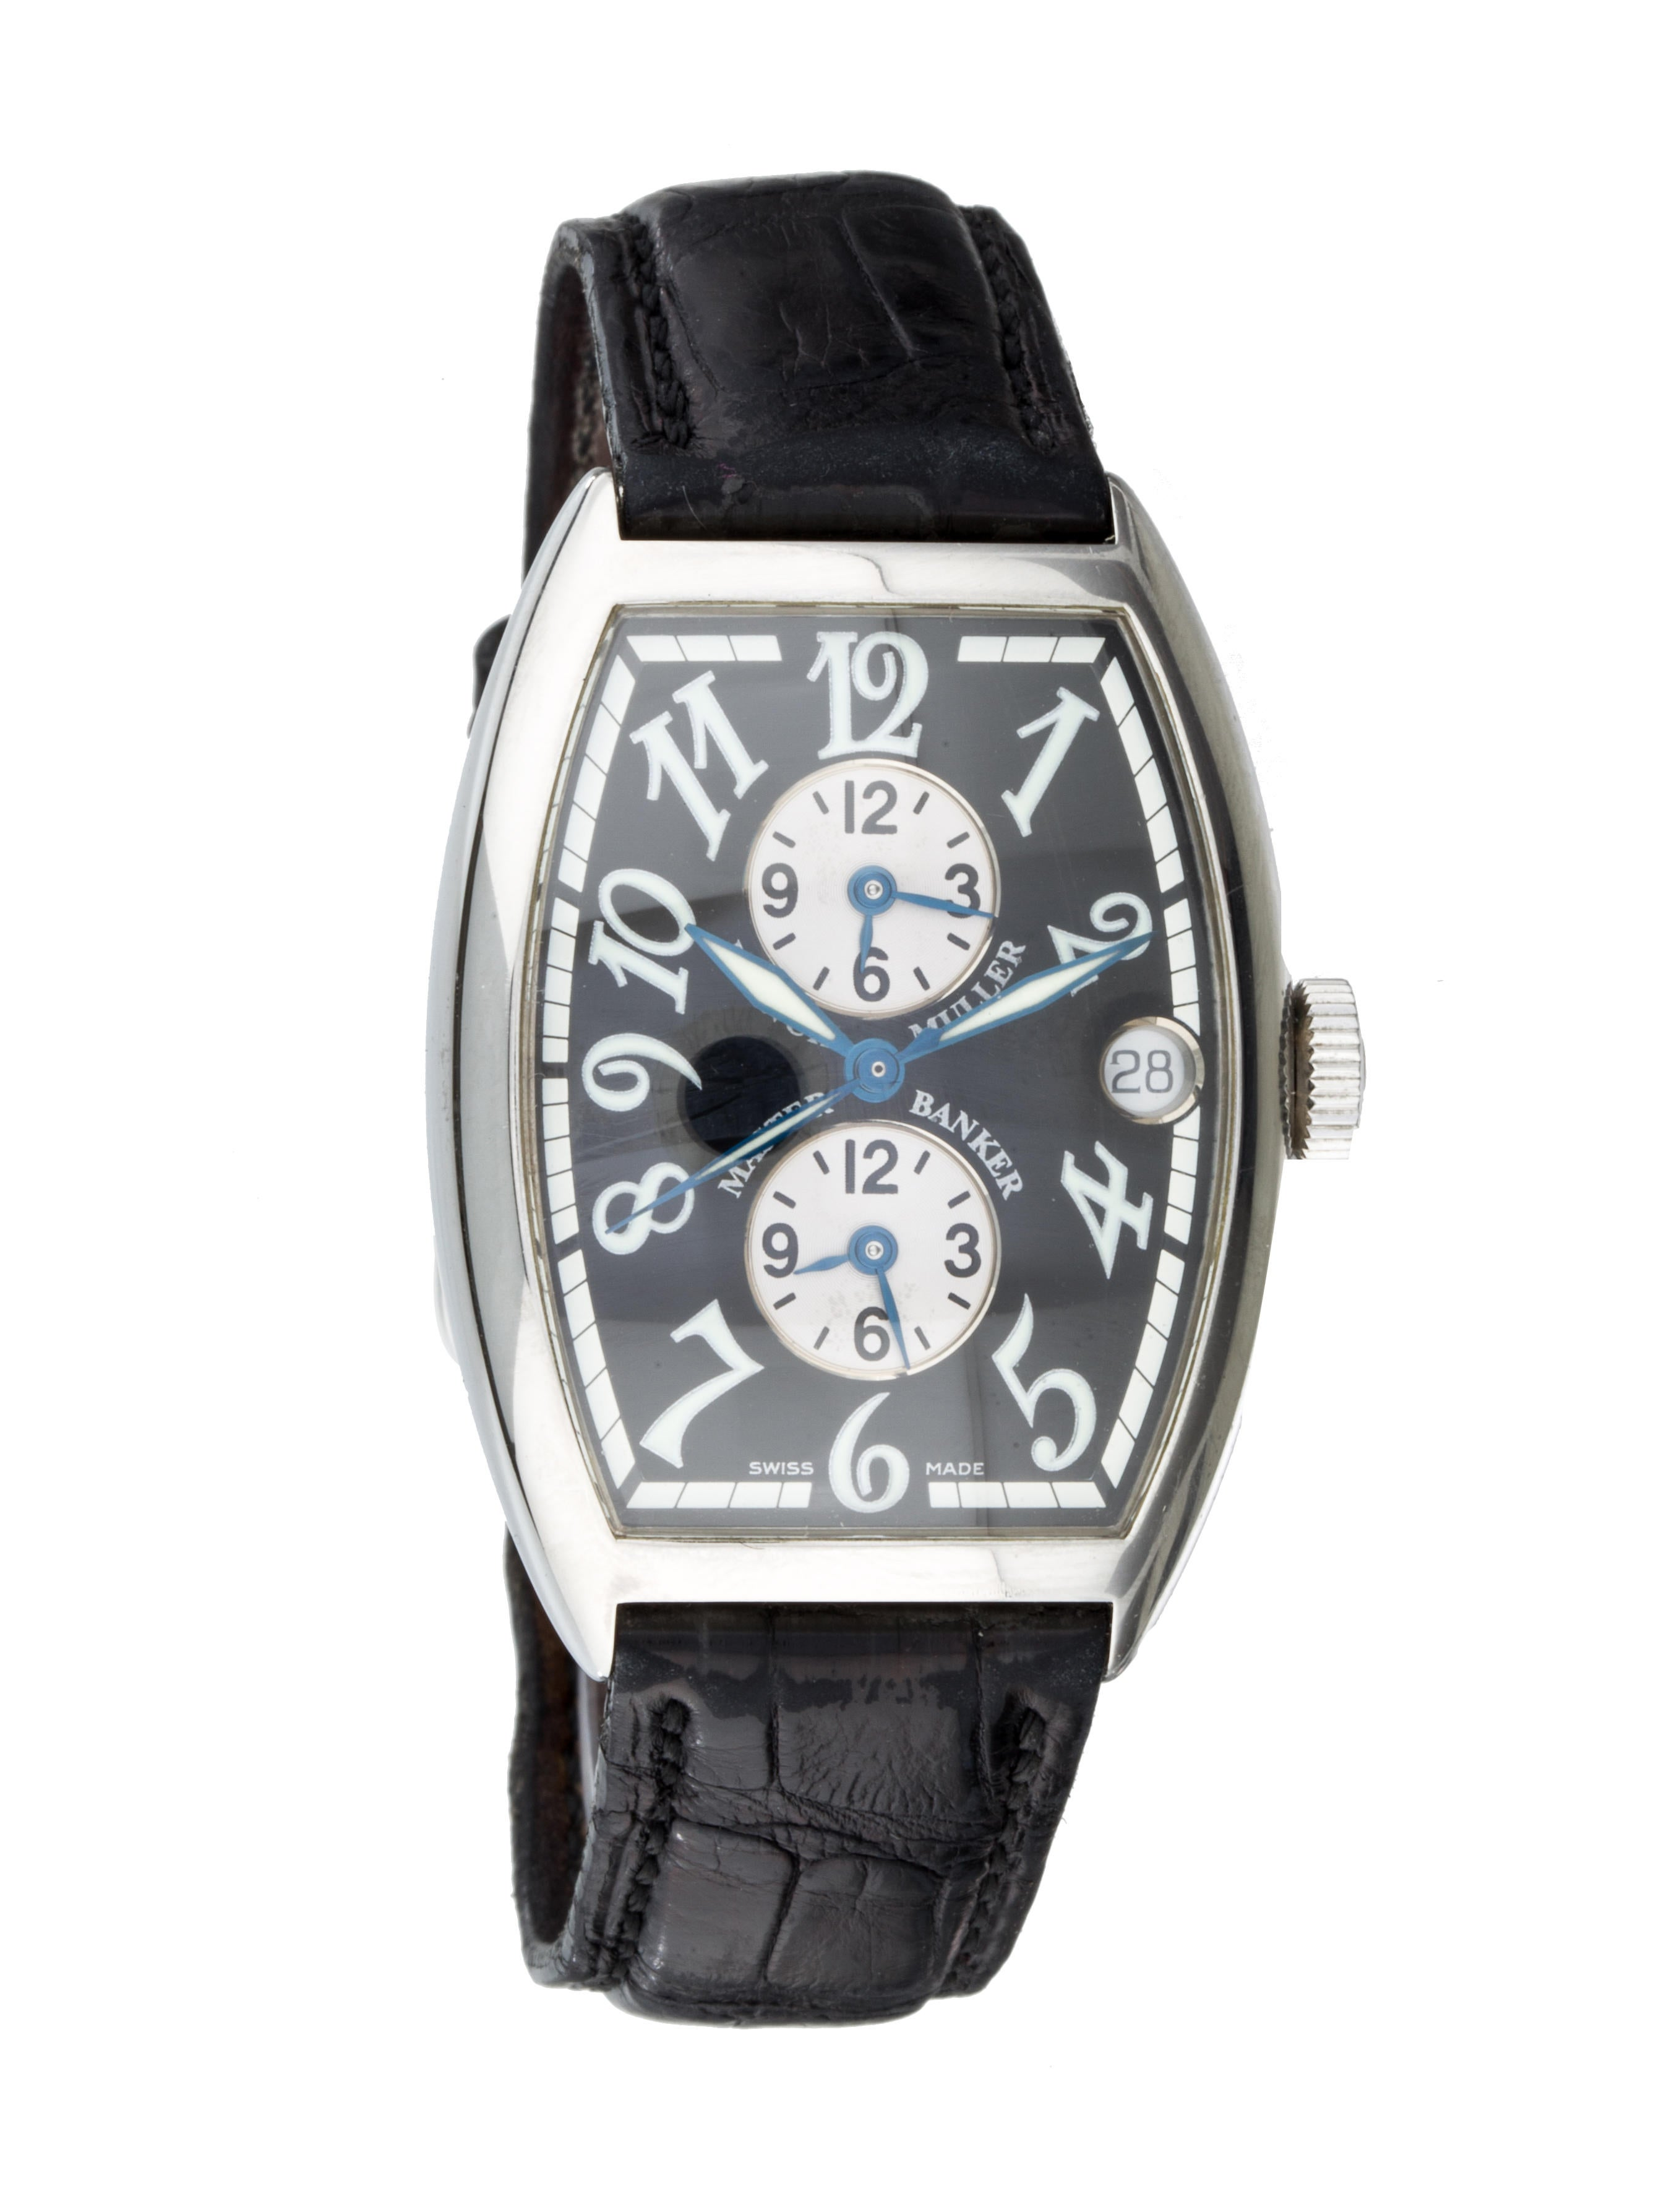 Franck muller master banker watch strap frm20083 the realreal for Franck muller watches